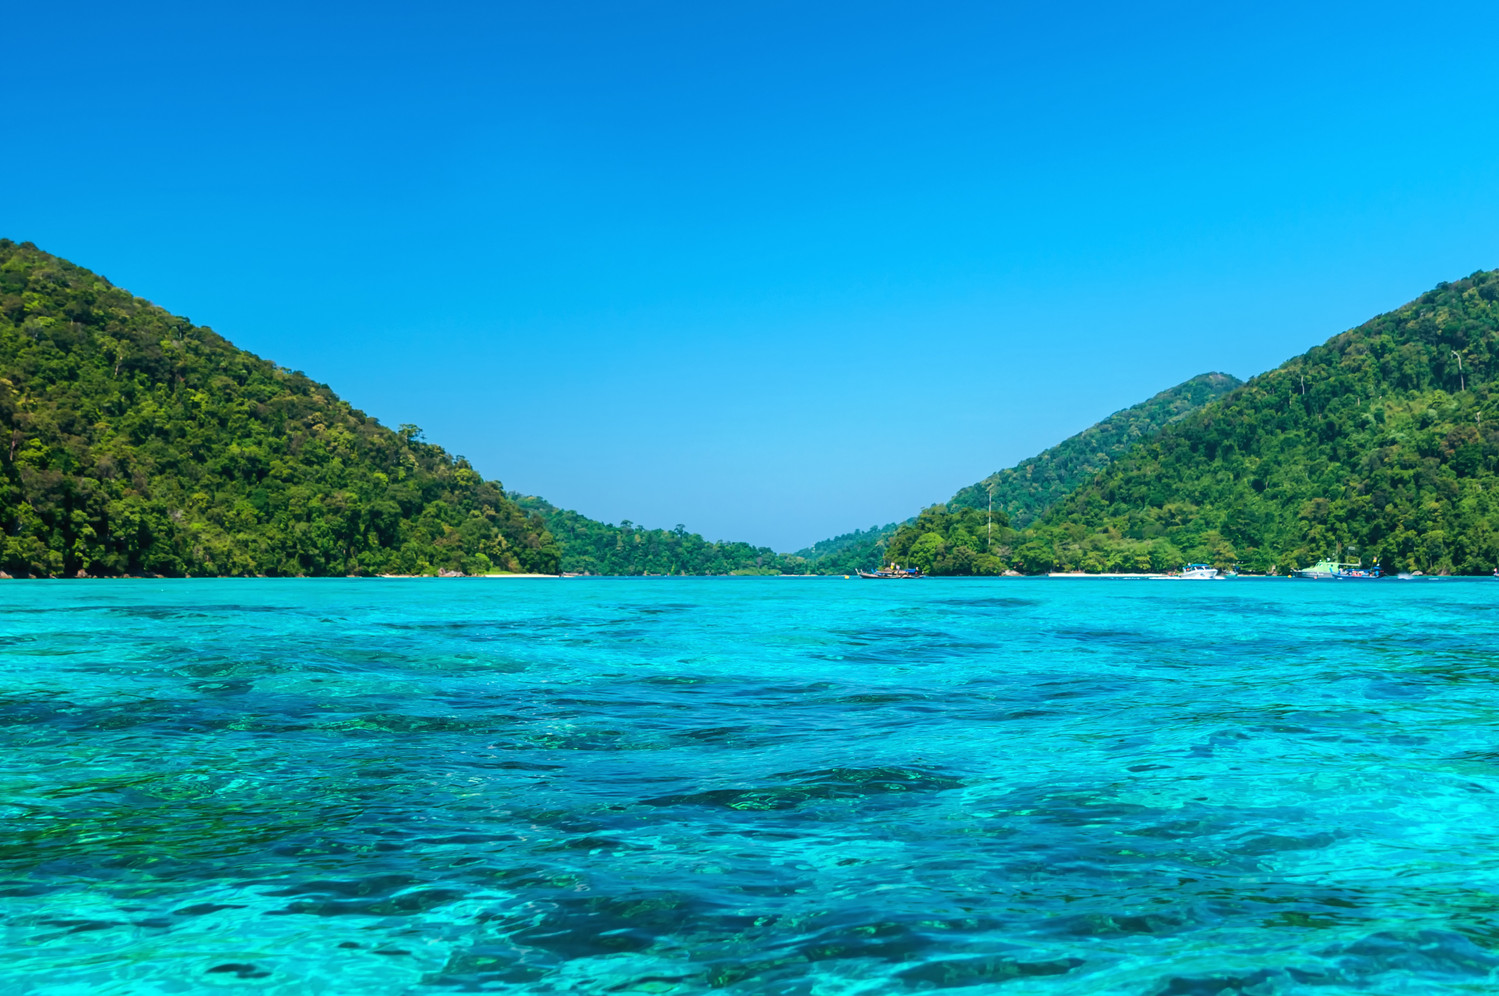 Canva - Beautiful turquoise sea at Surin